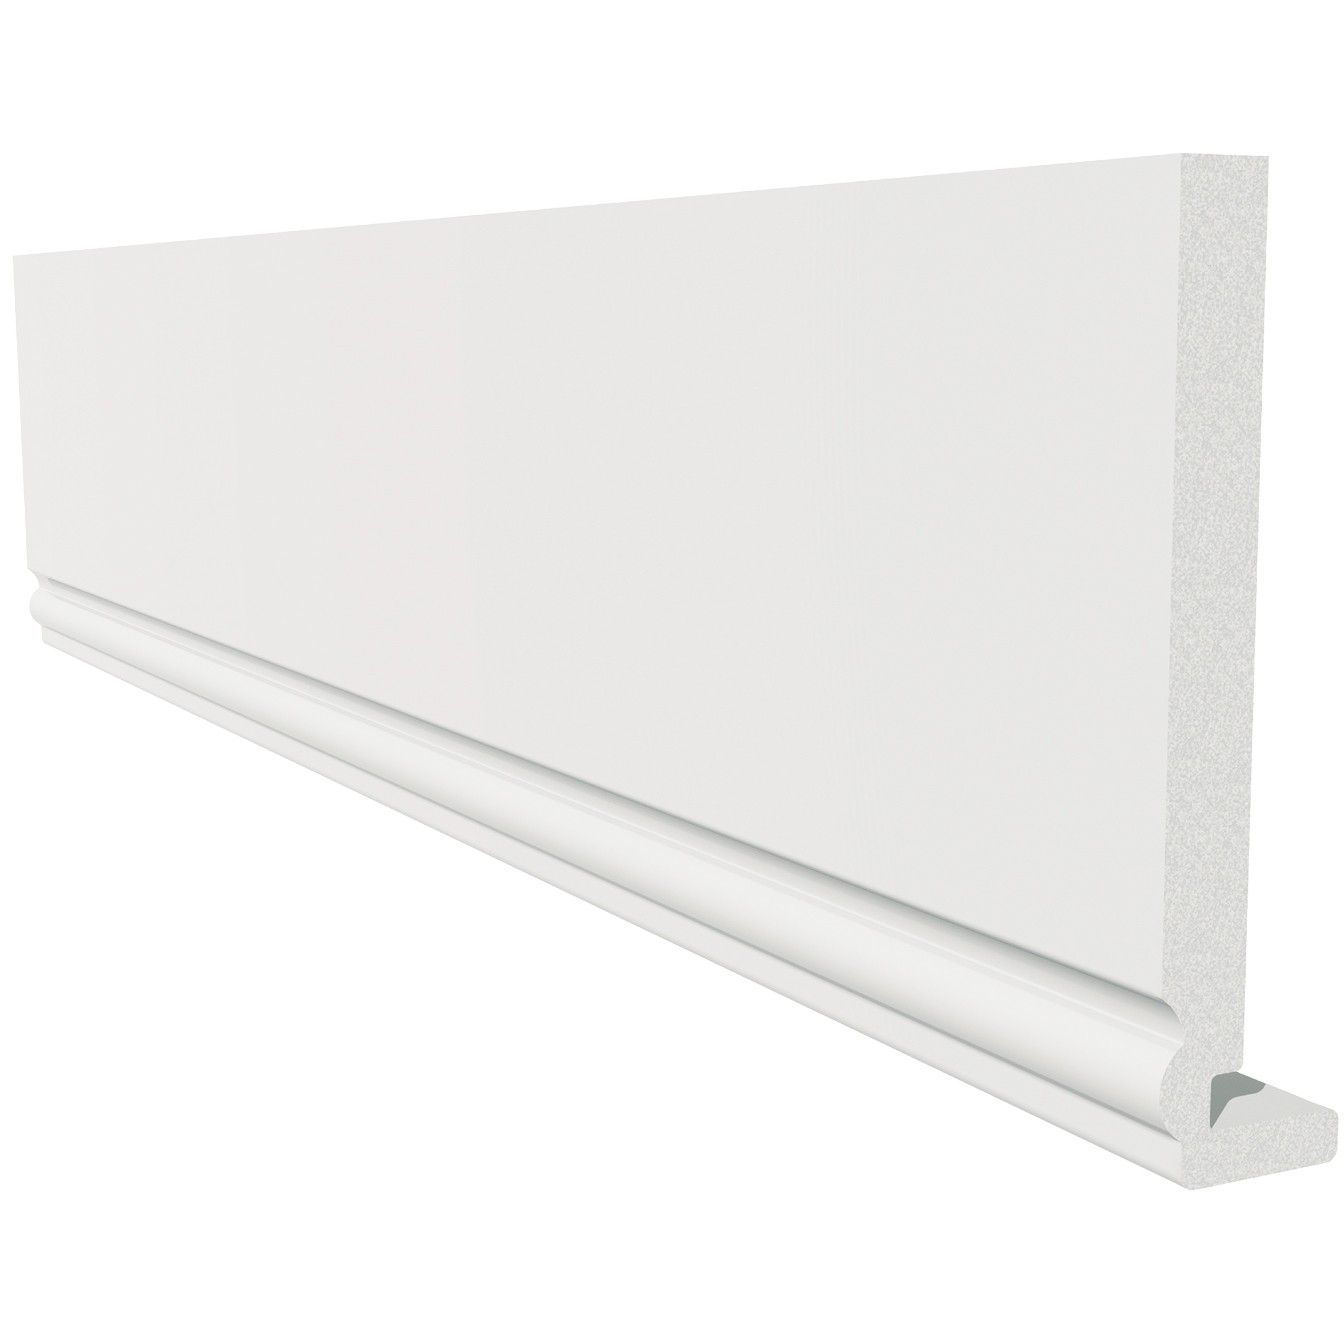 Freefoam Magnum Ogee 18mm Fascia Board - White, 150mm, 5 metre